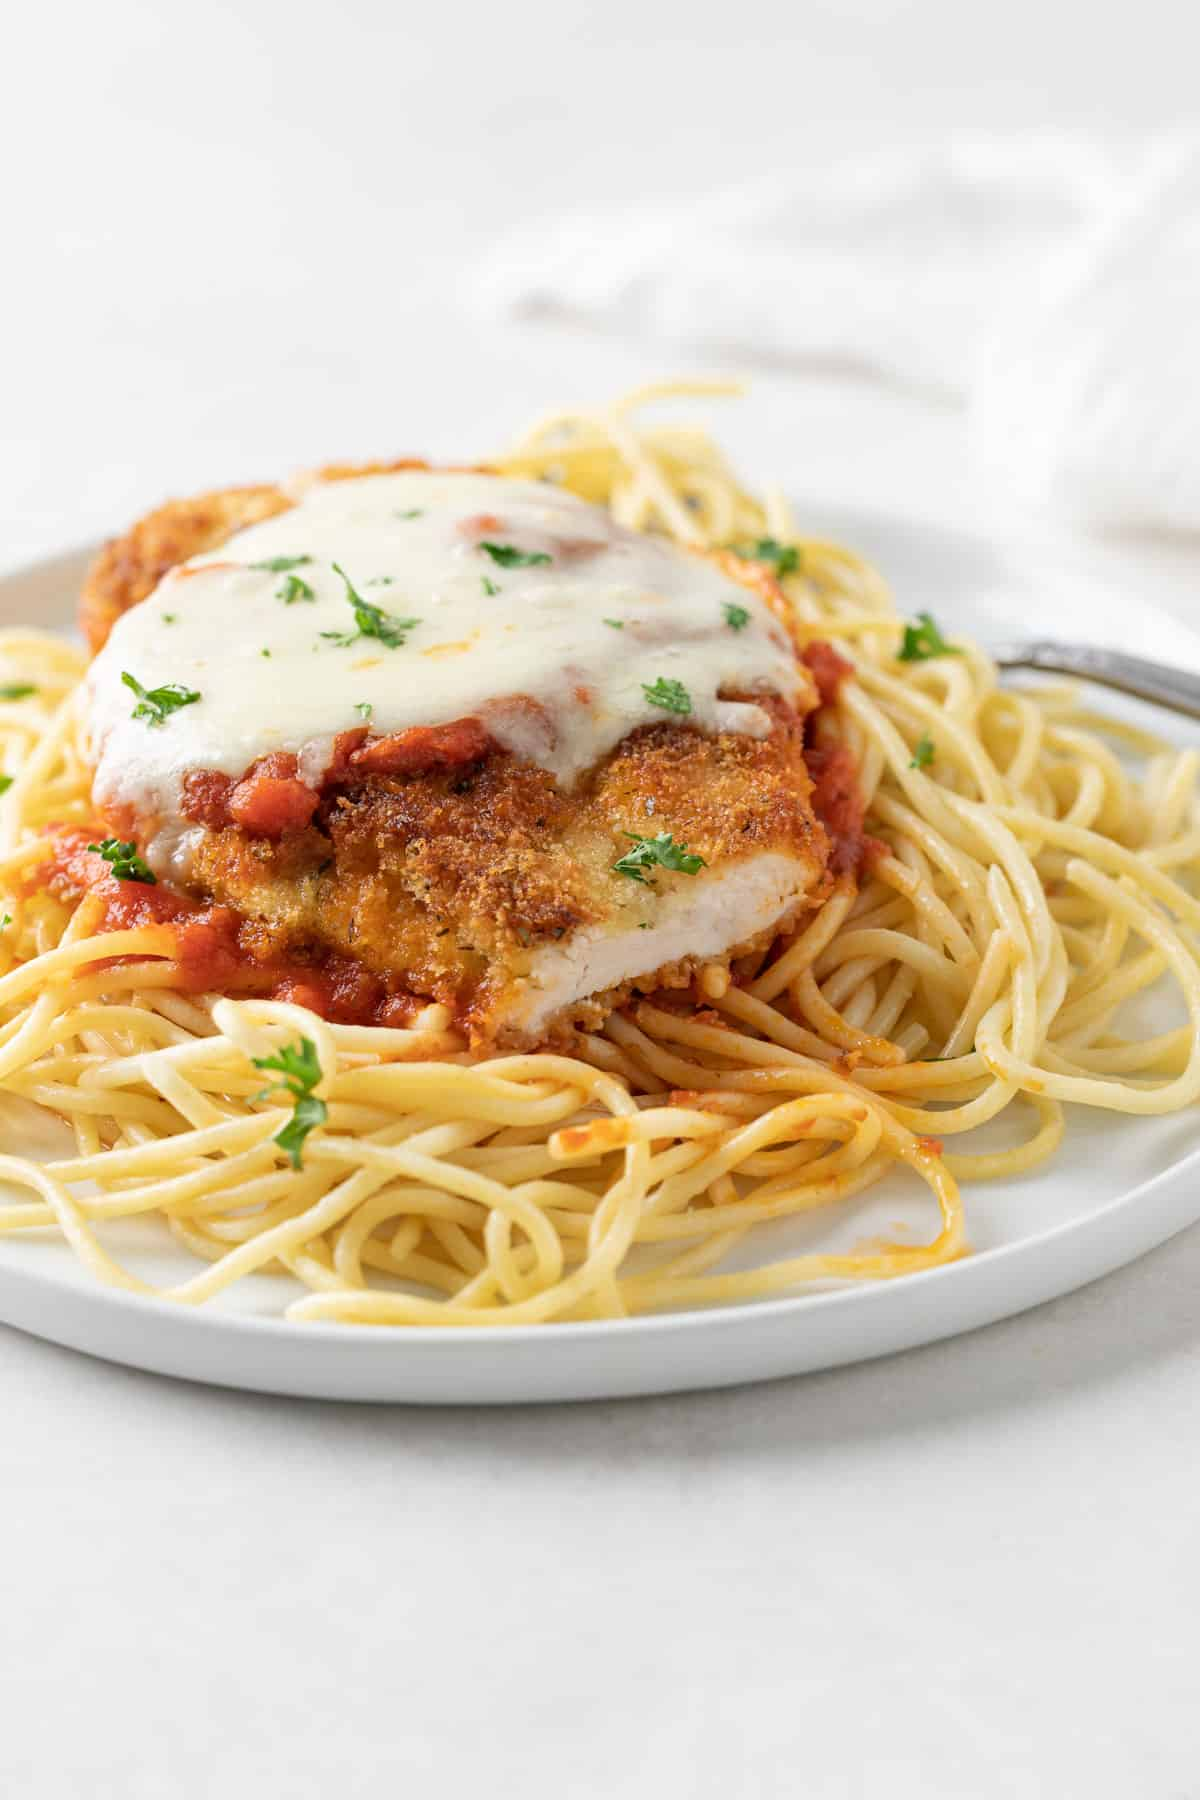 A closeup of classic chicken parmesan over a bed of pasta on a white plate.